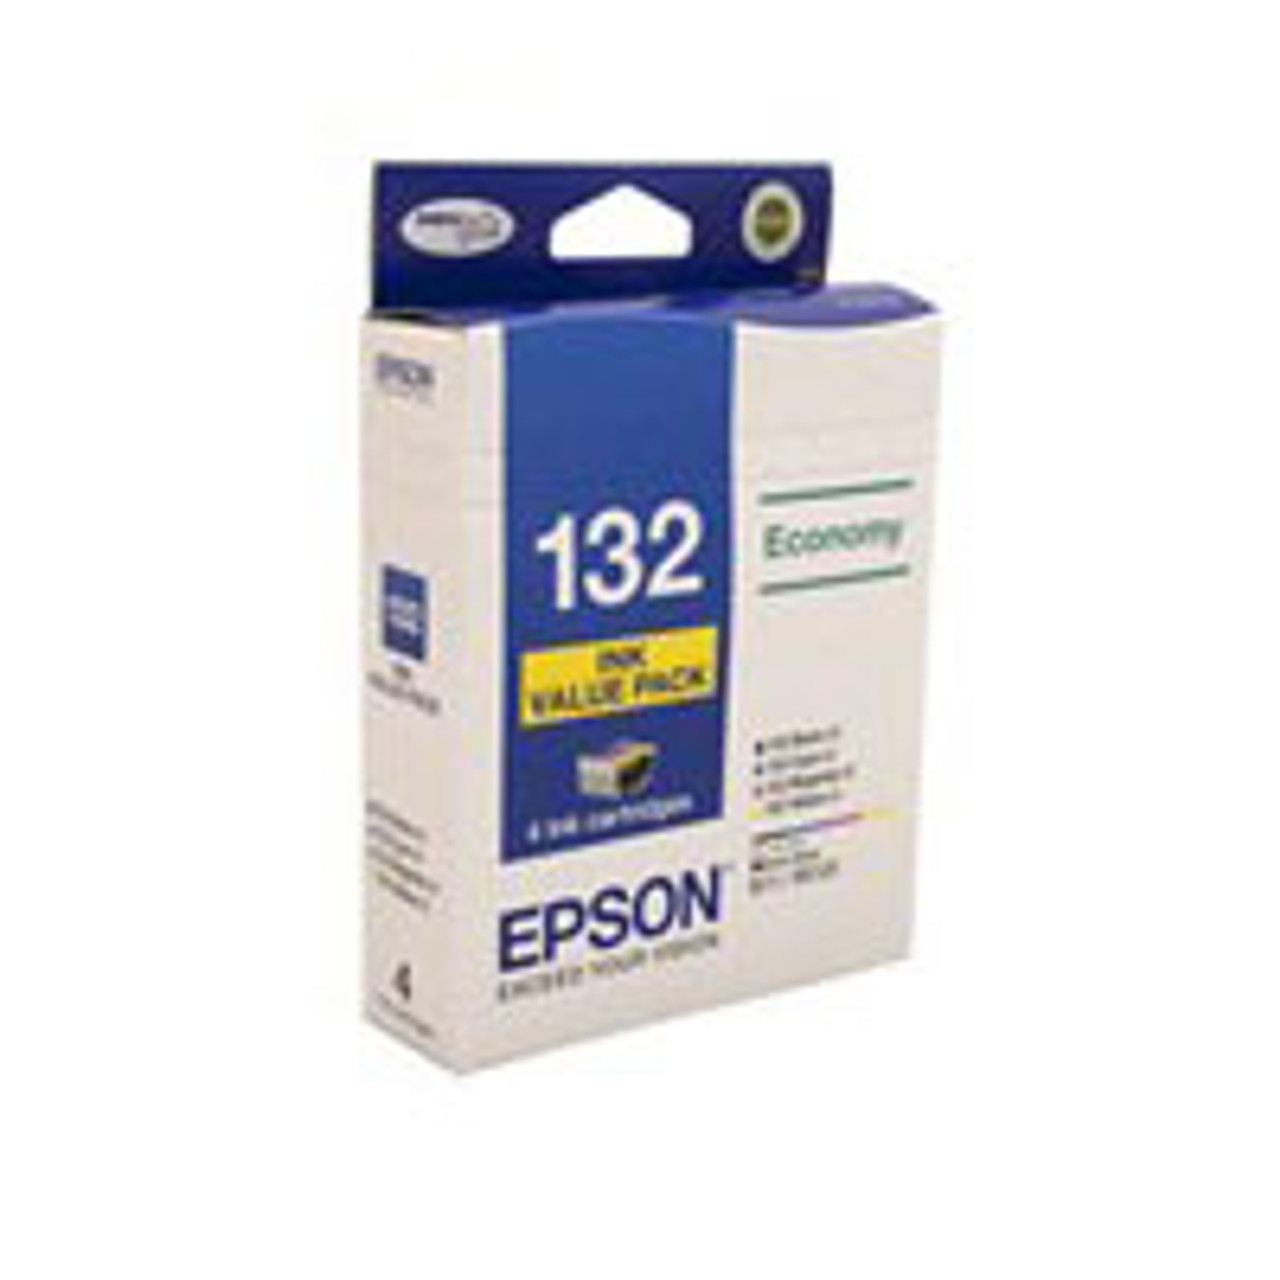 Image for Epson 132 Ink Cartridges - Black, Cyan, Magenta, Yellow CX Computer Superstore